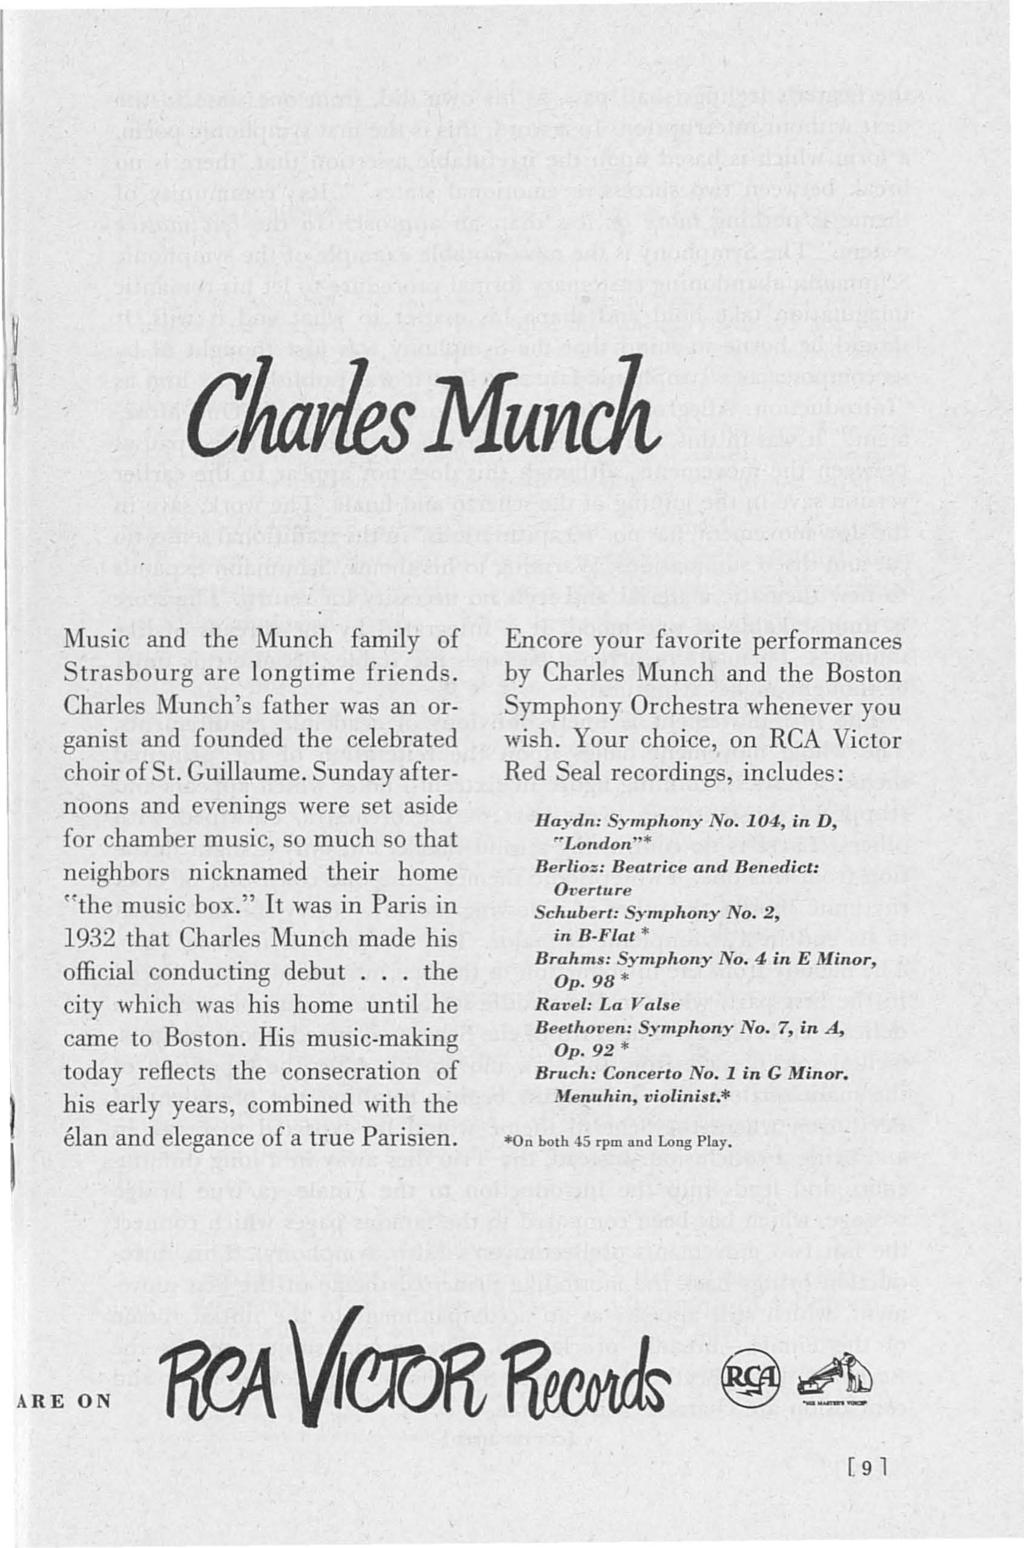 clwrles Munck Music and the Munch family of Strasbourg are longtime friends. Charles Munch's father was an organi t and founded the celebrated choir of t. Guillaume.